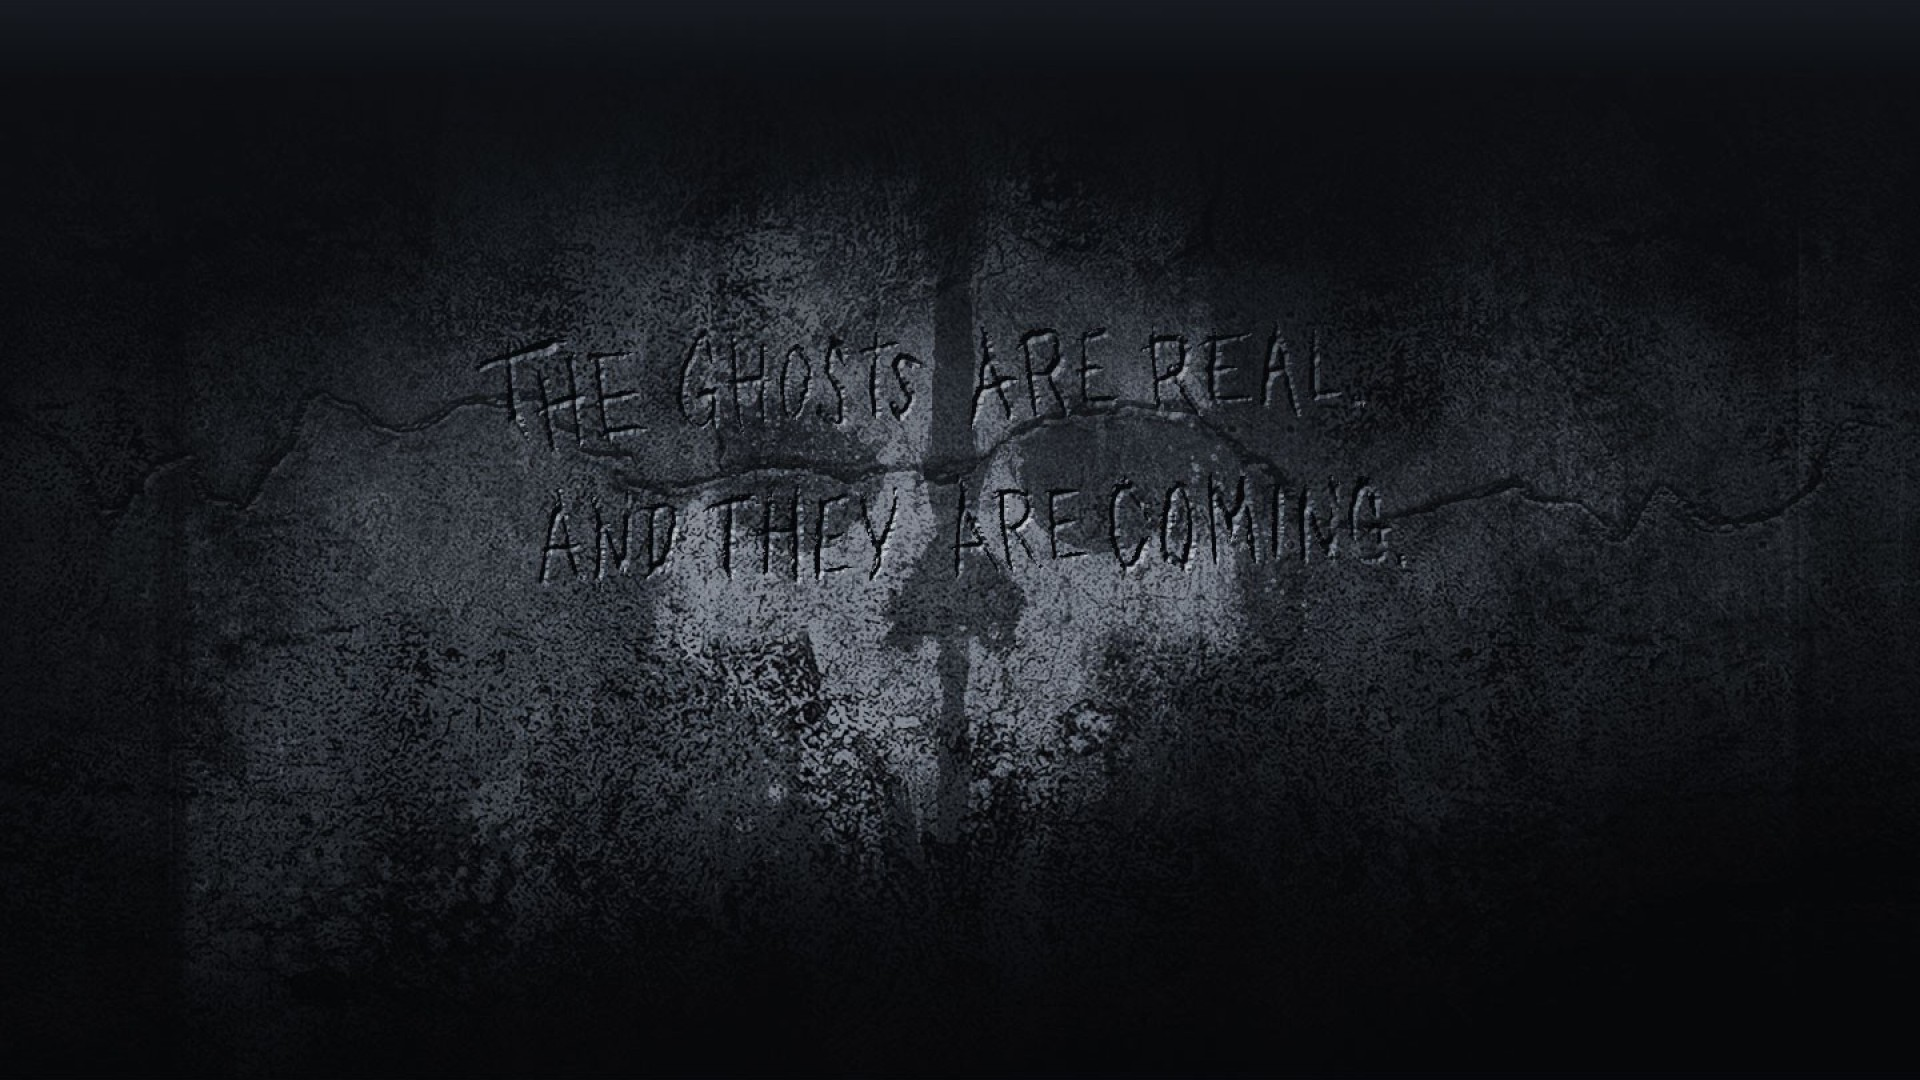 Call Of Duty Ghosts Wallpaper HD Ghosts 2jpg   Picxat   Online 1920x1080